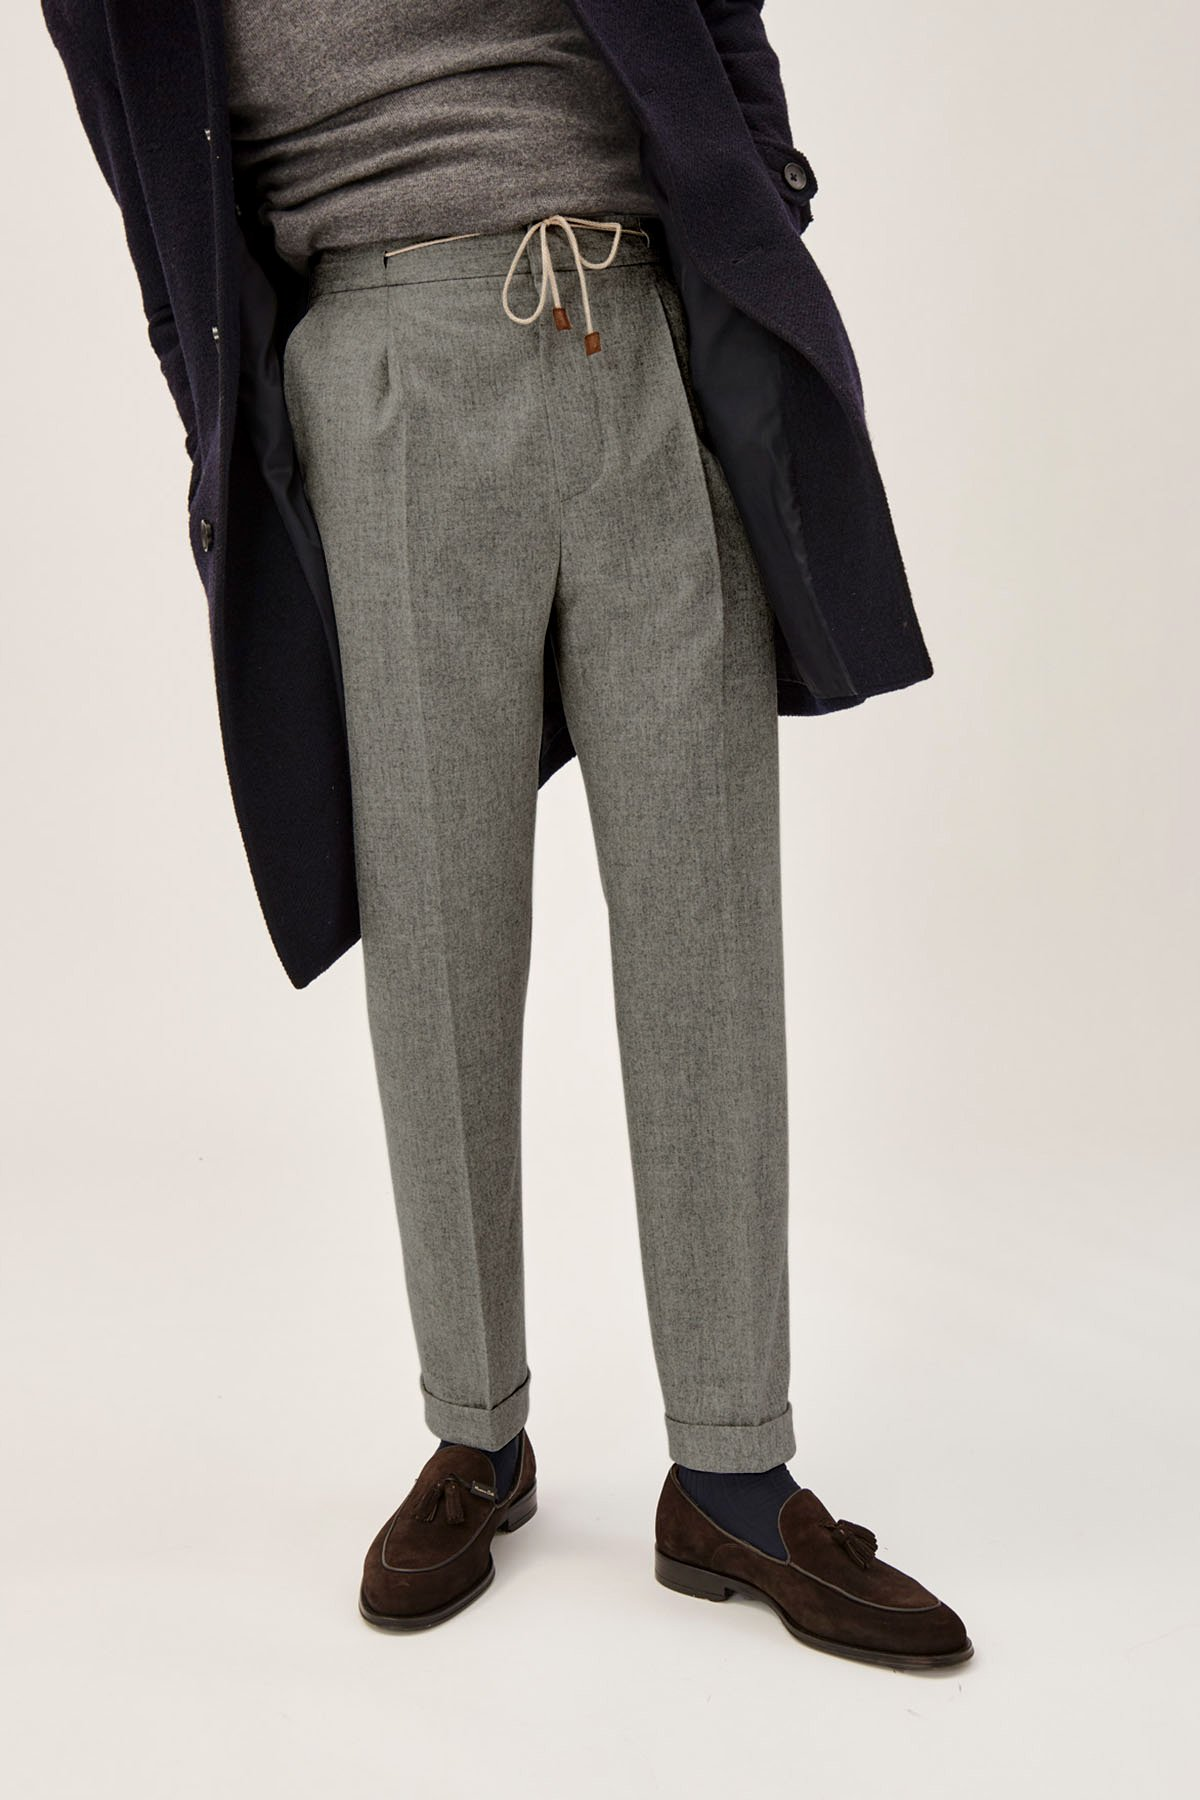 Wool trousers ethical Italian mens fashion